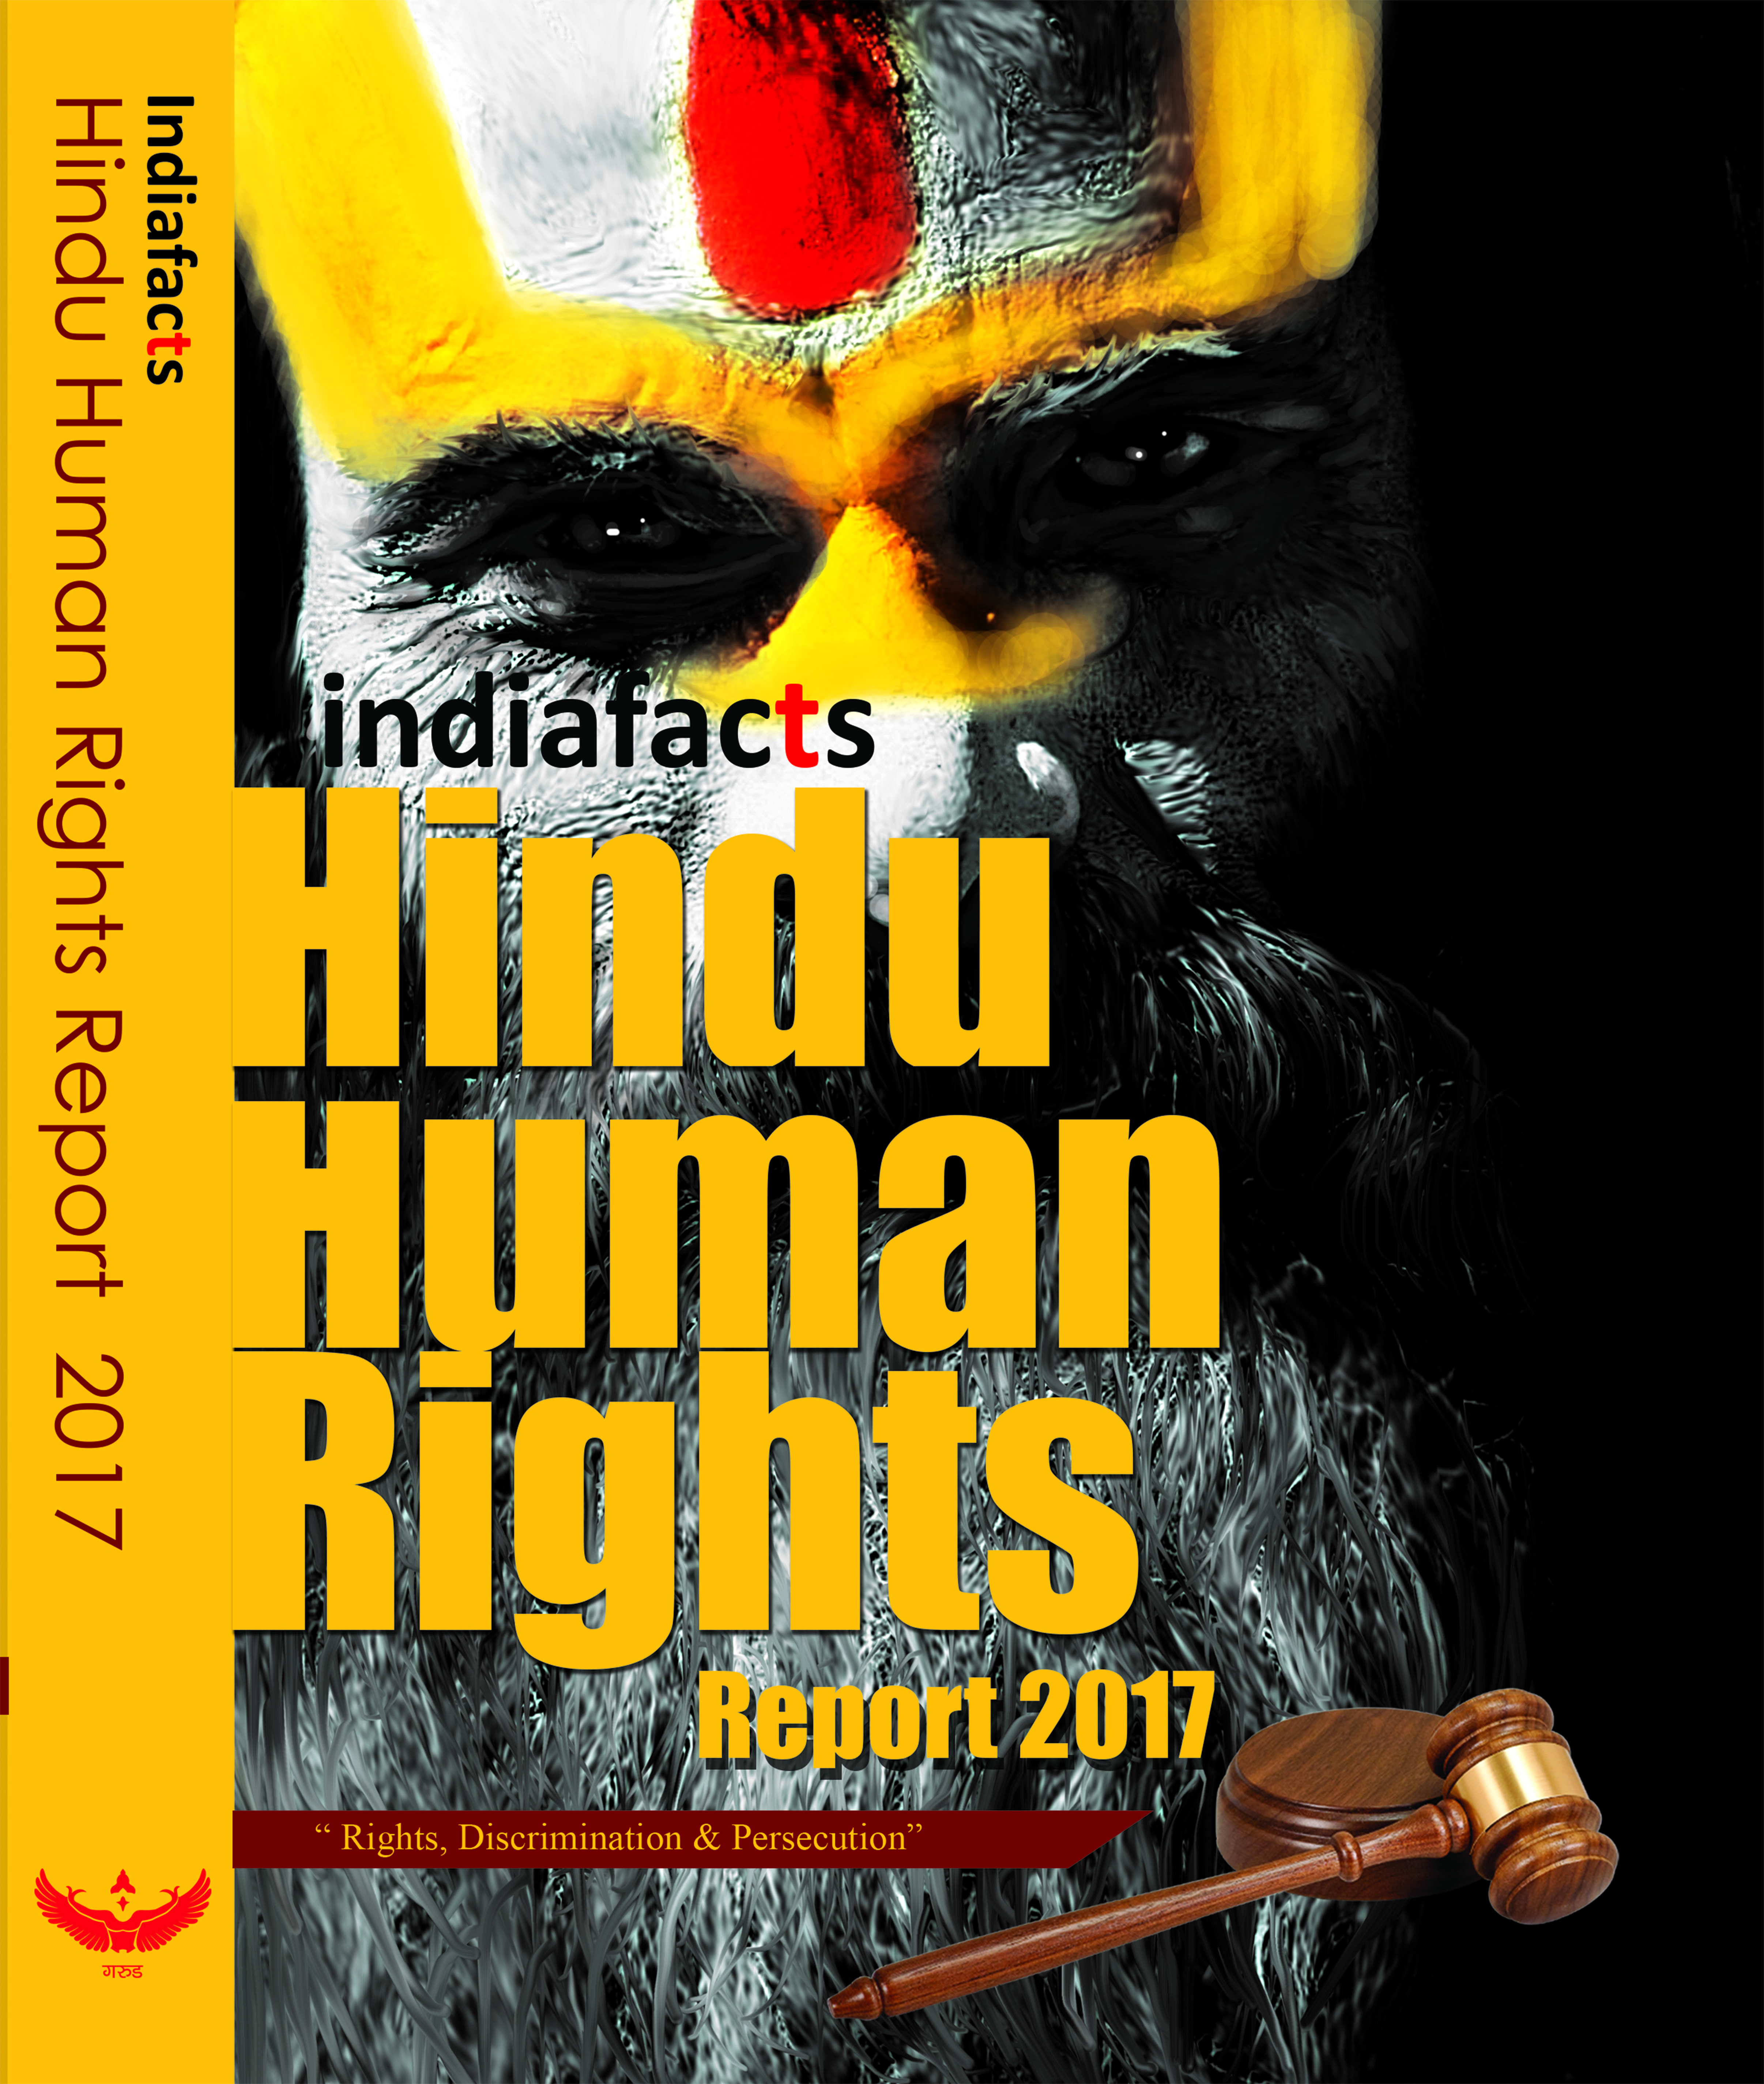 IndiaFacts Hindu Human Rights Report launched at New Delhi: A Report